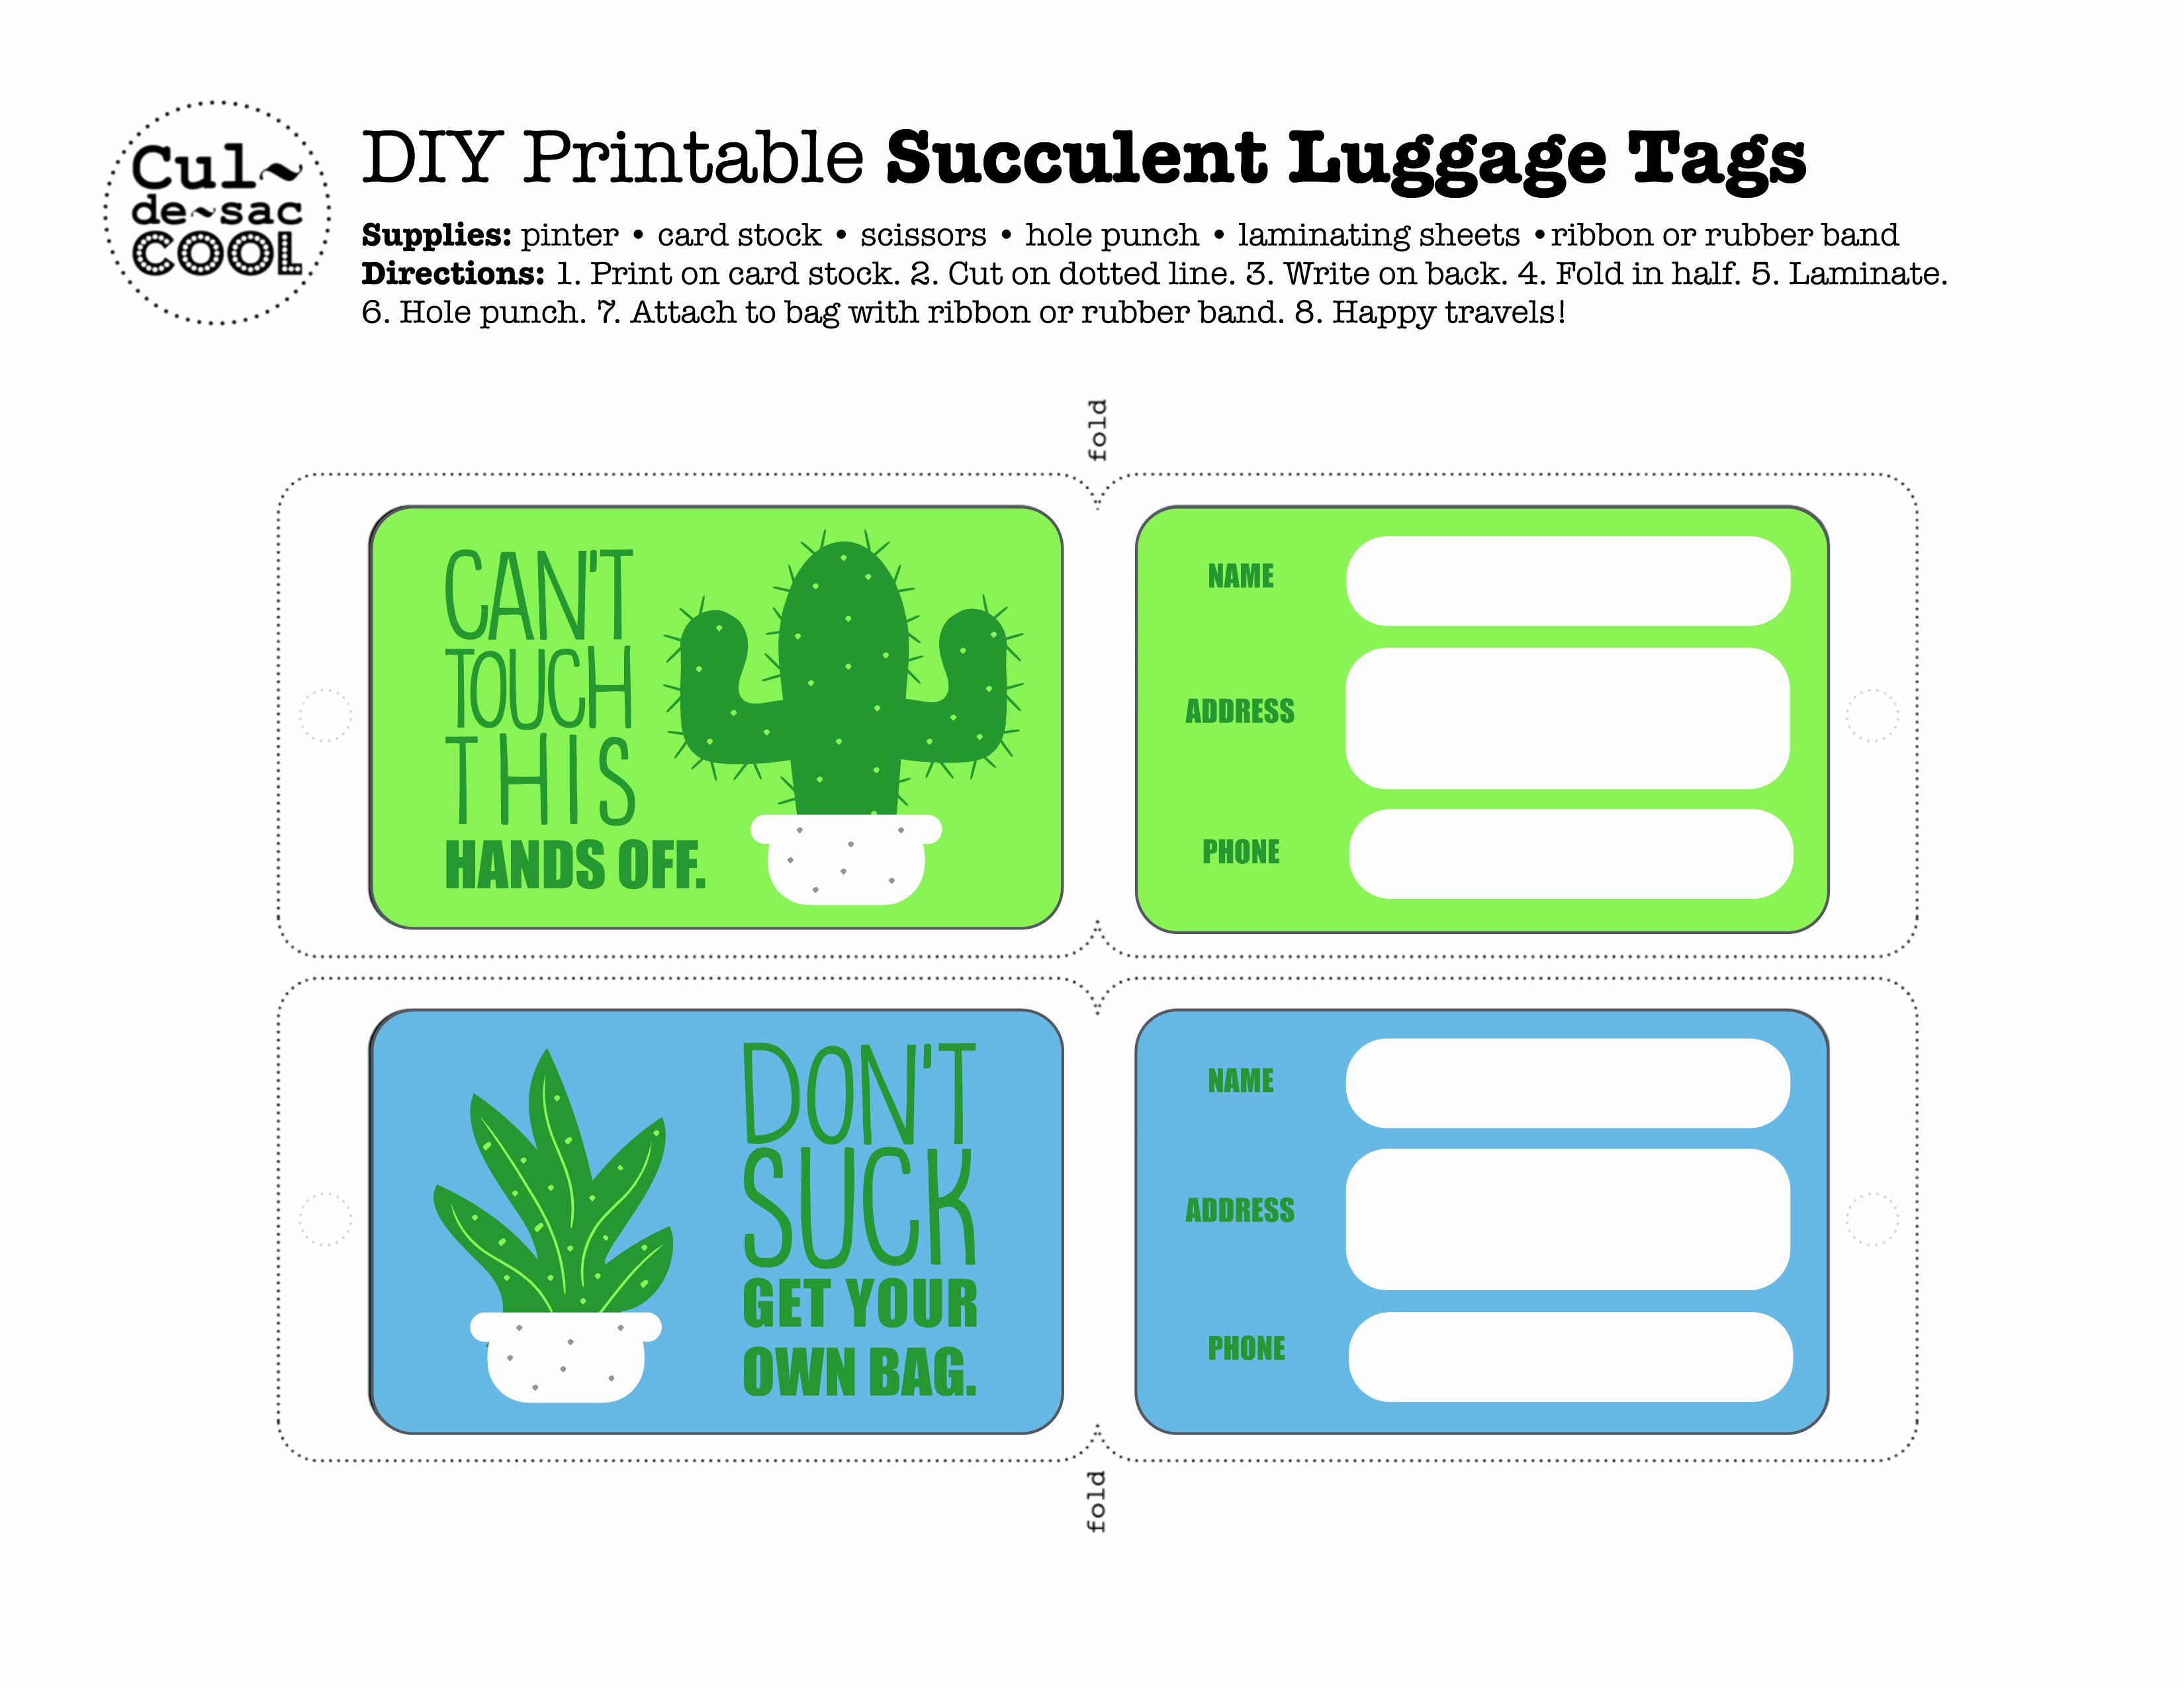 Luggage Tag Template Free Printable Best Of Diy Printable Succulent Luggage Tags